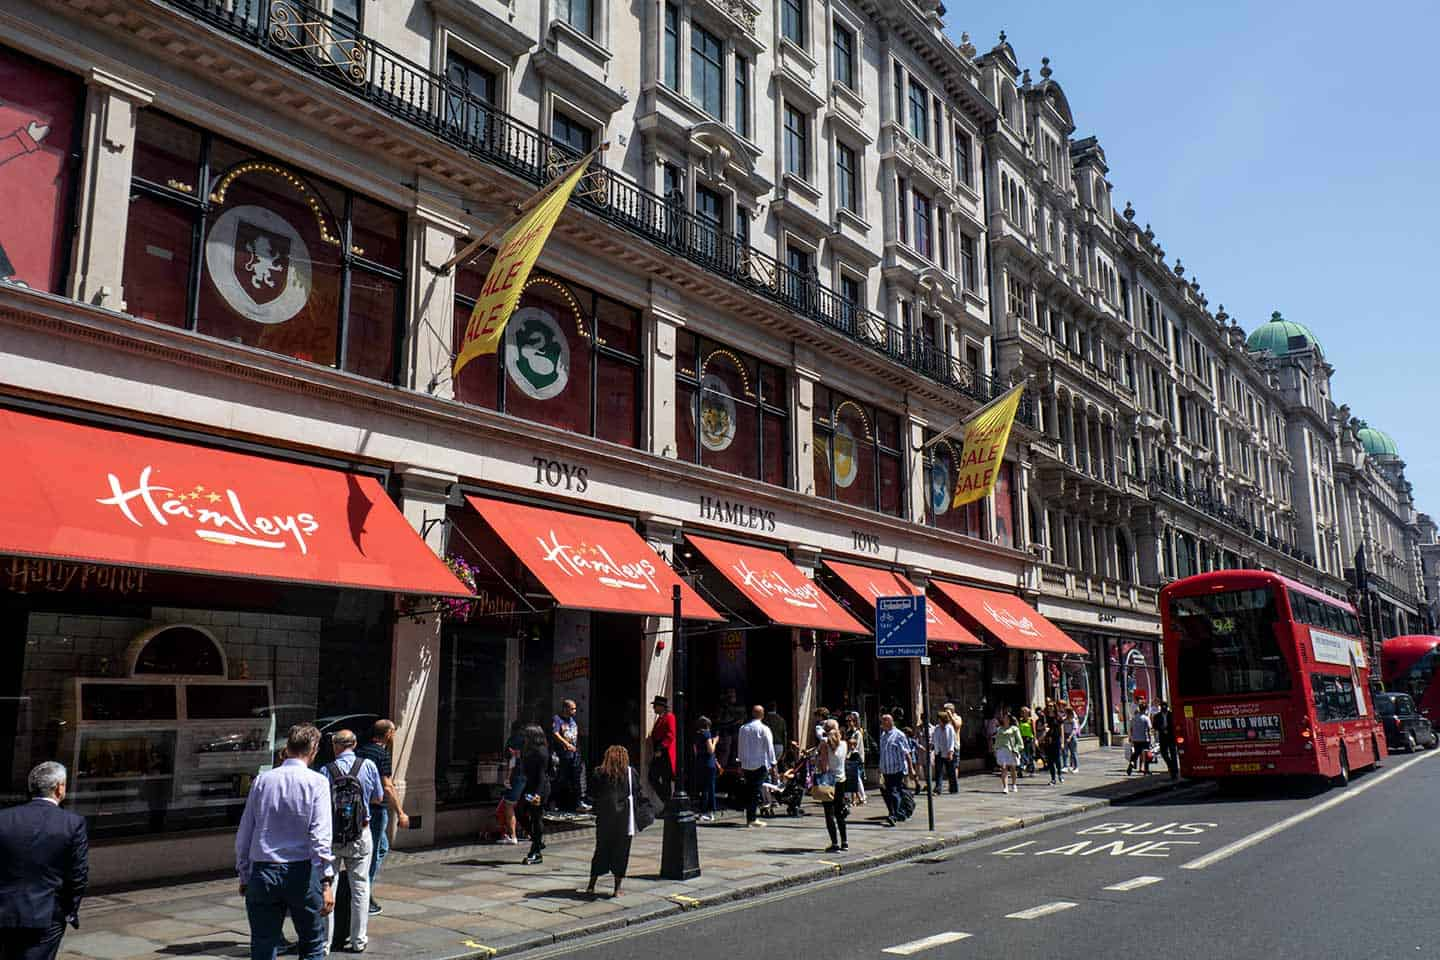 Image of Hamleys Toy Store on Regent Street, London